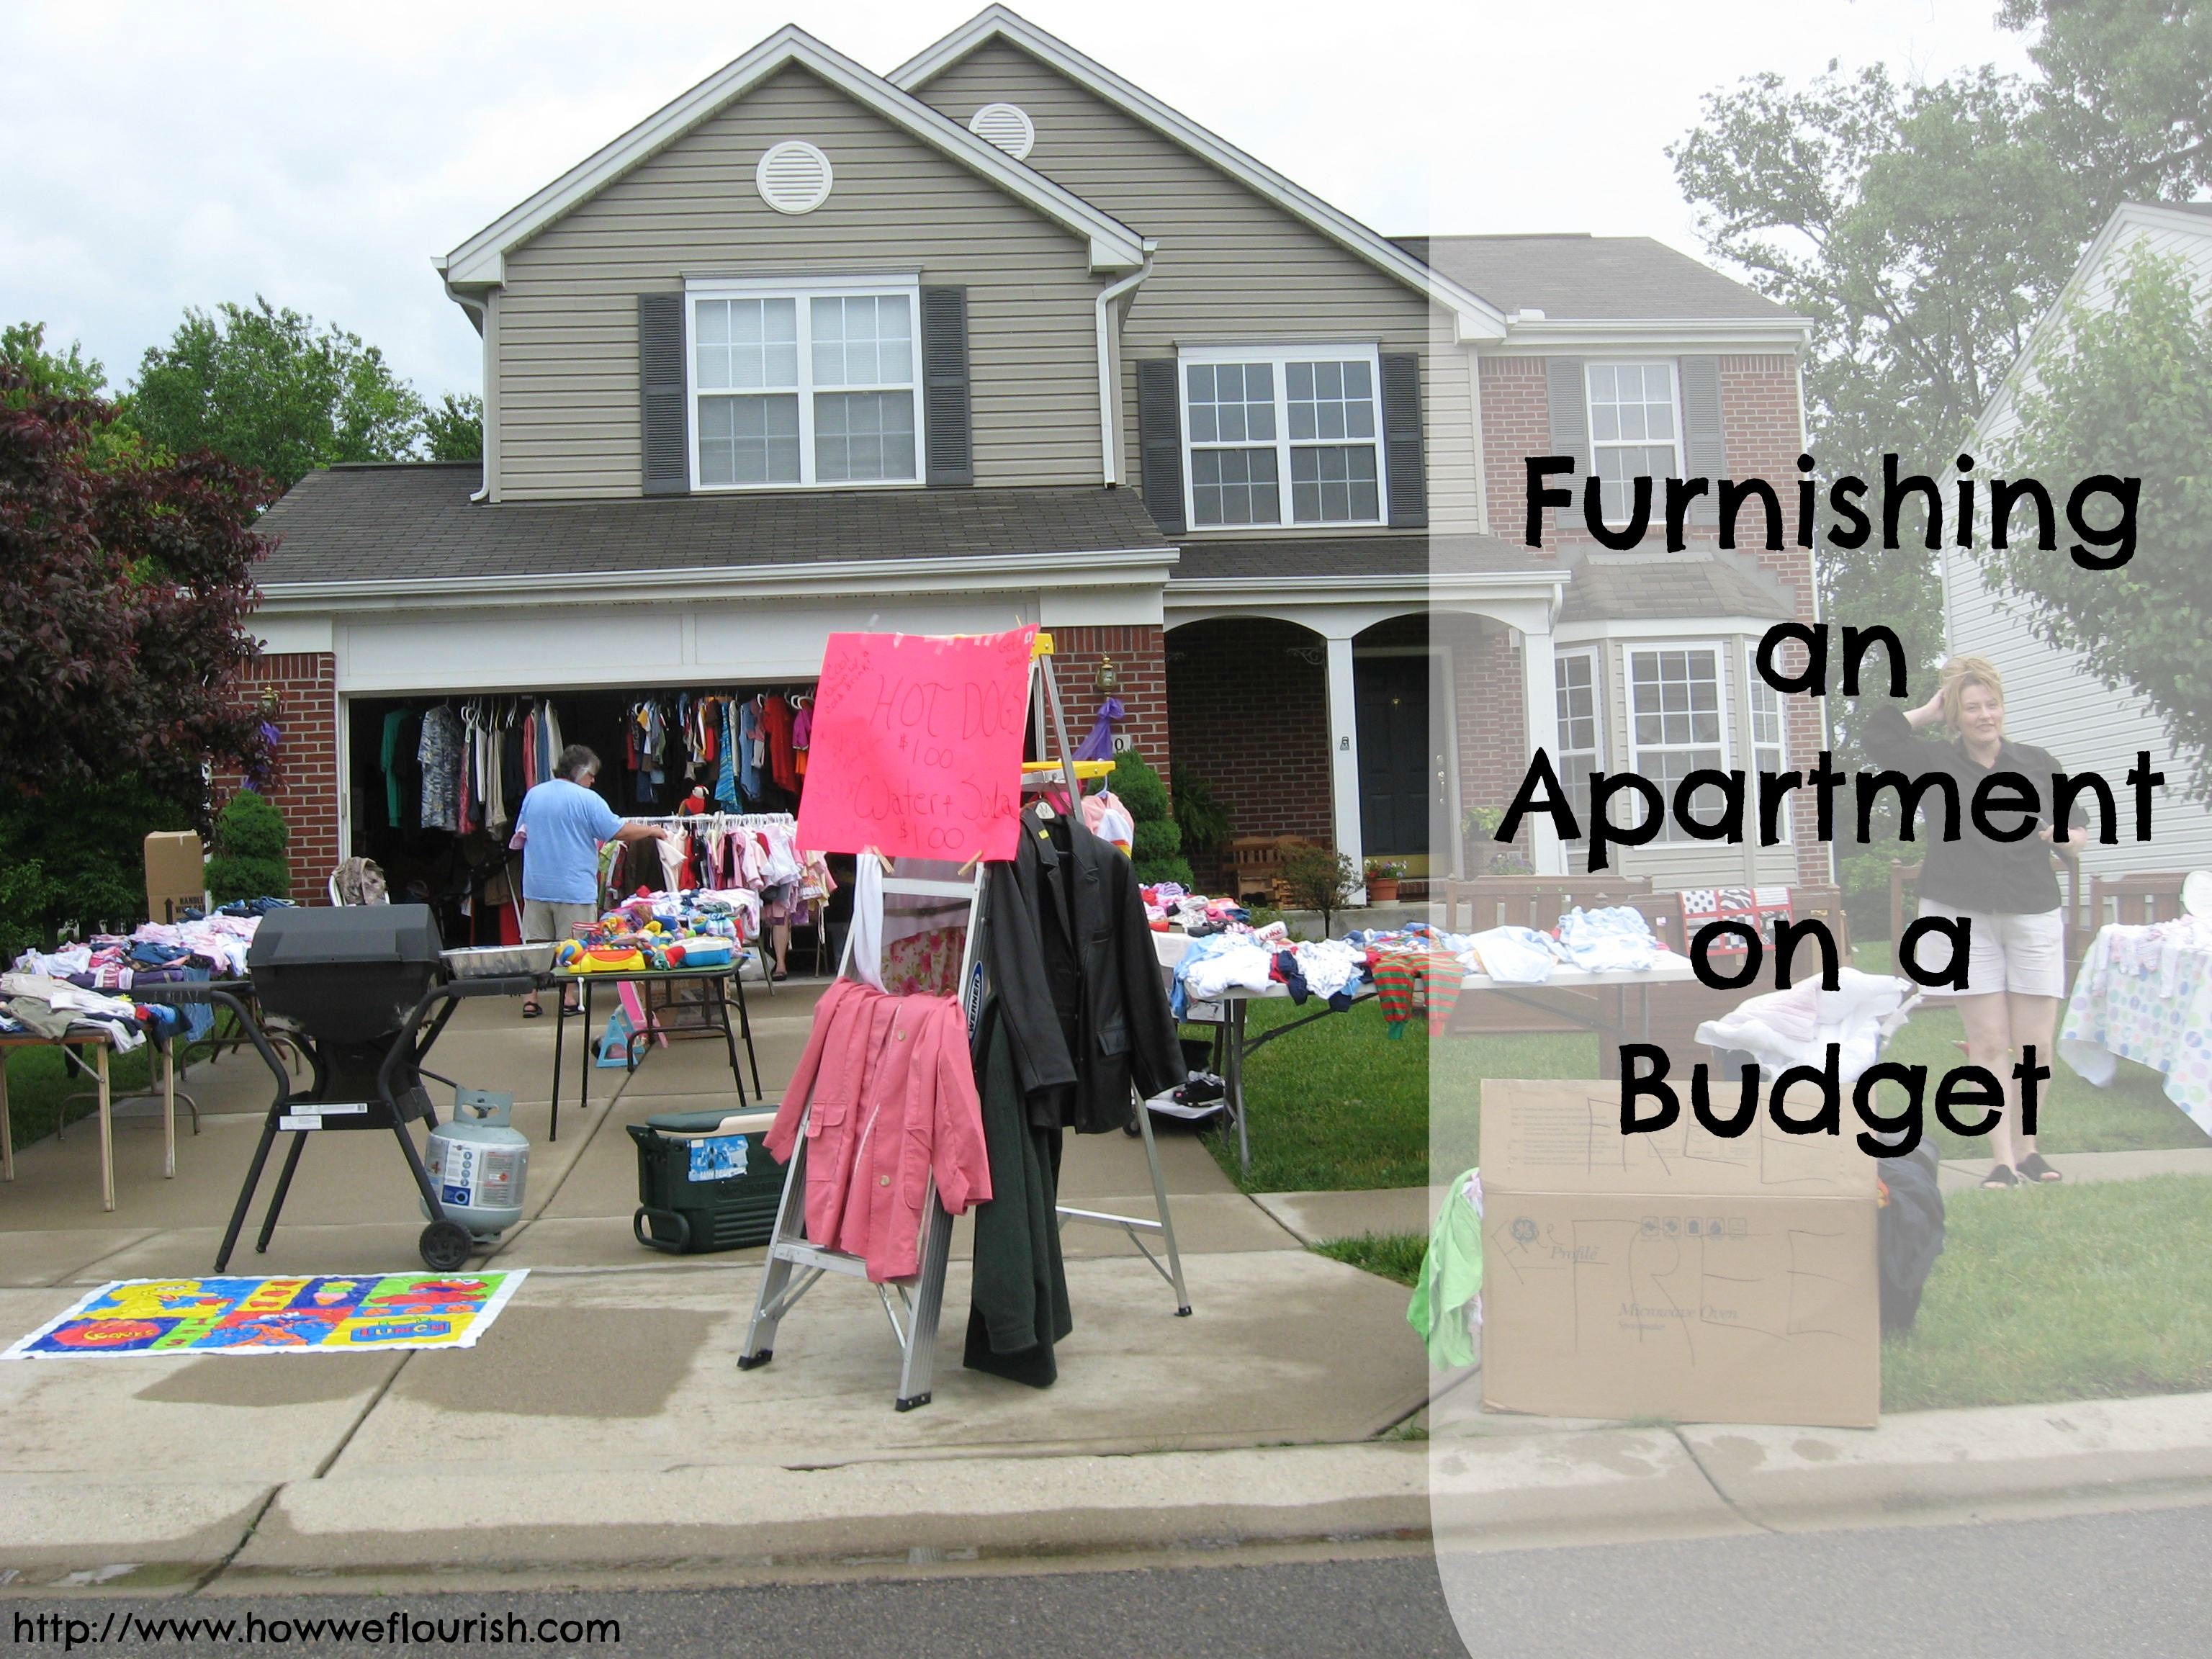 Furnishing an apartment on a budget how we flourish for Furnish an apartment on a budget